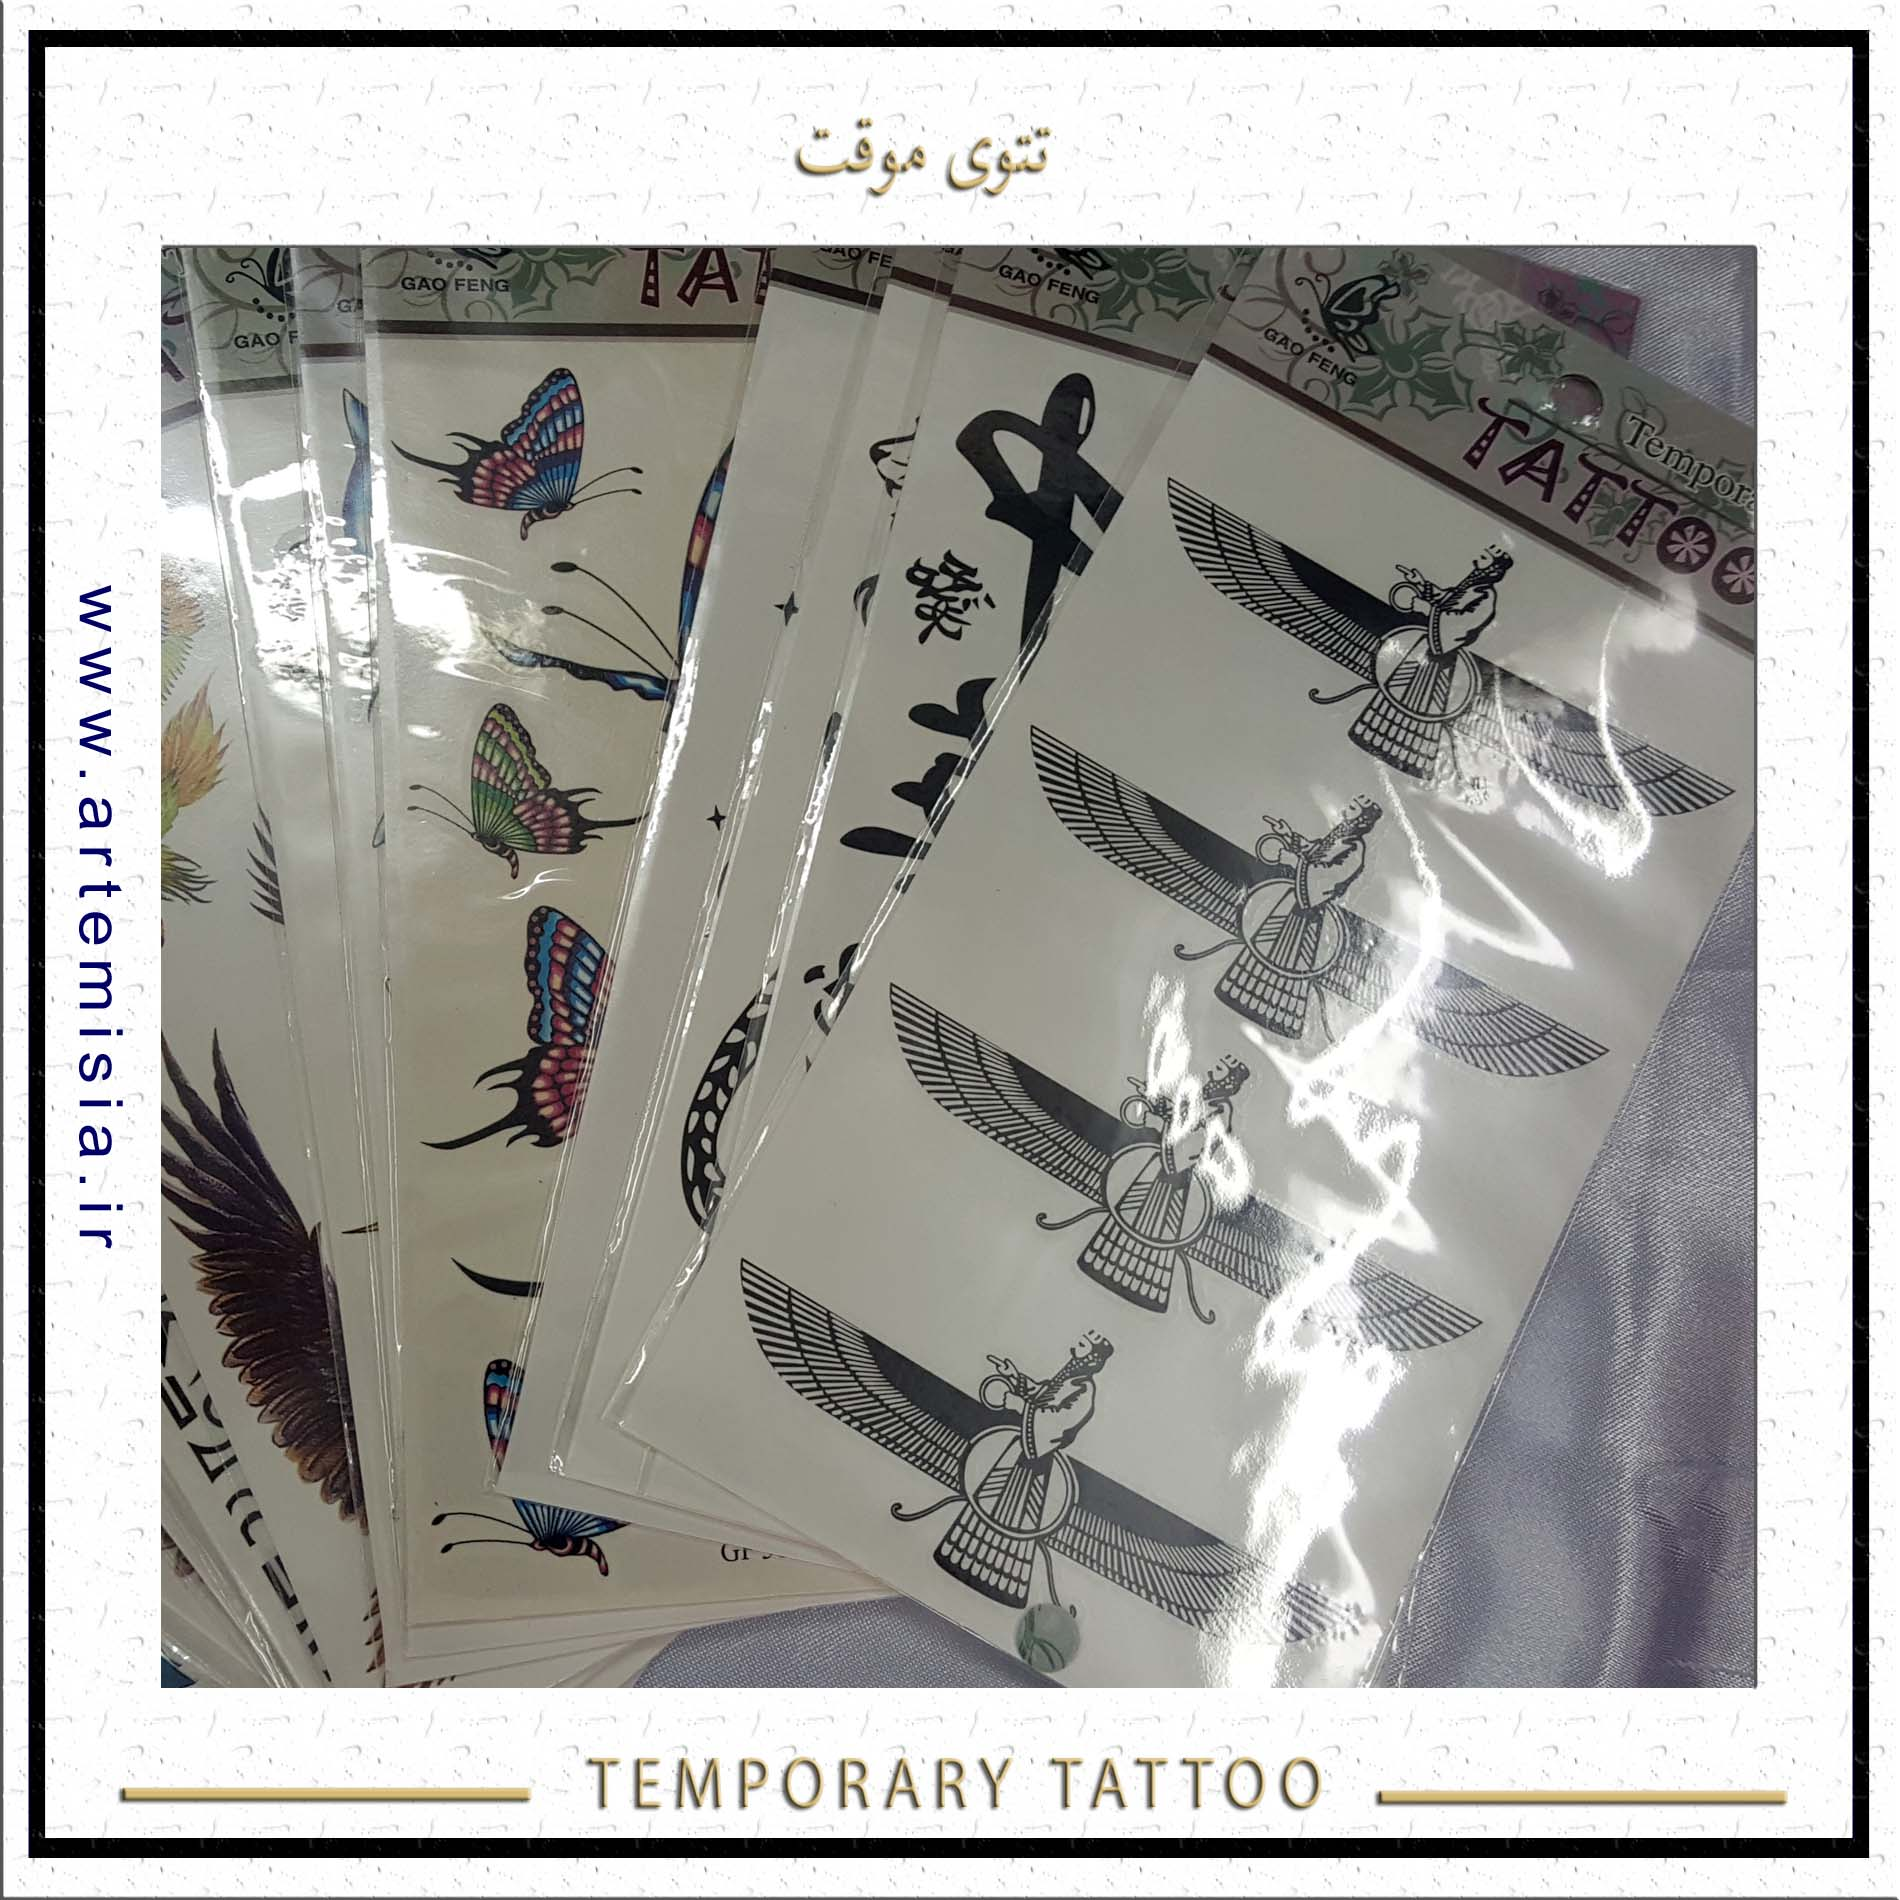 Temporary Tattoo